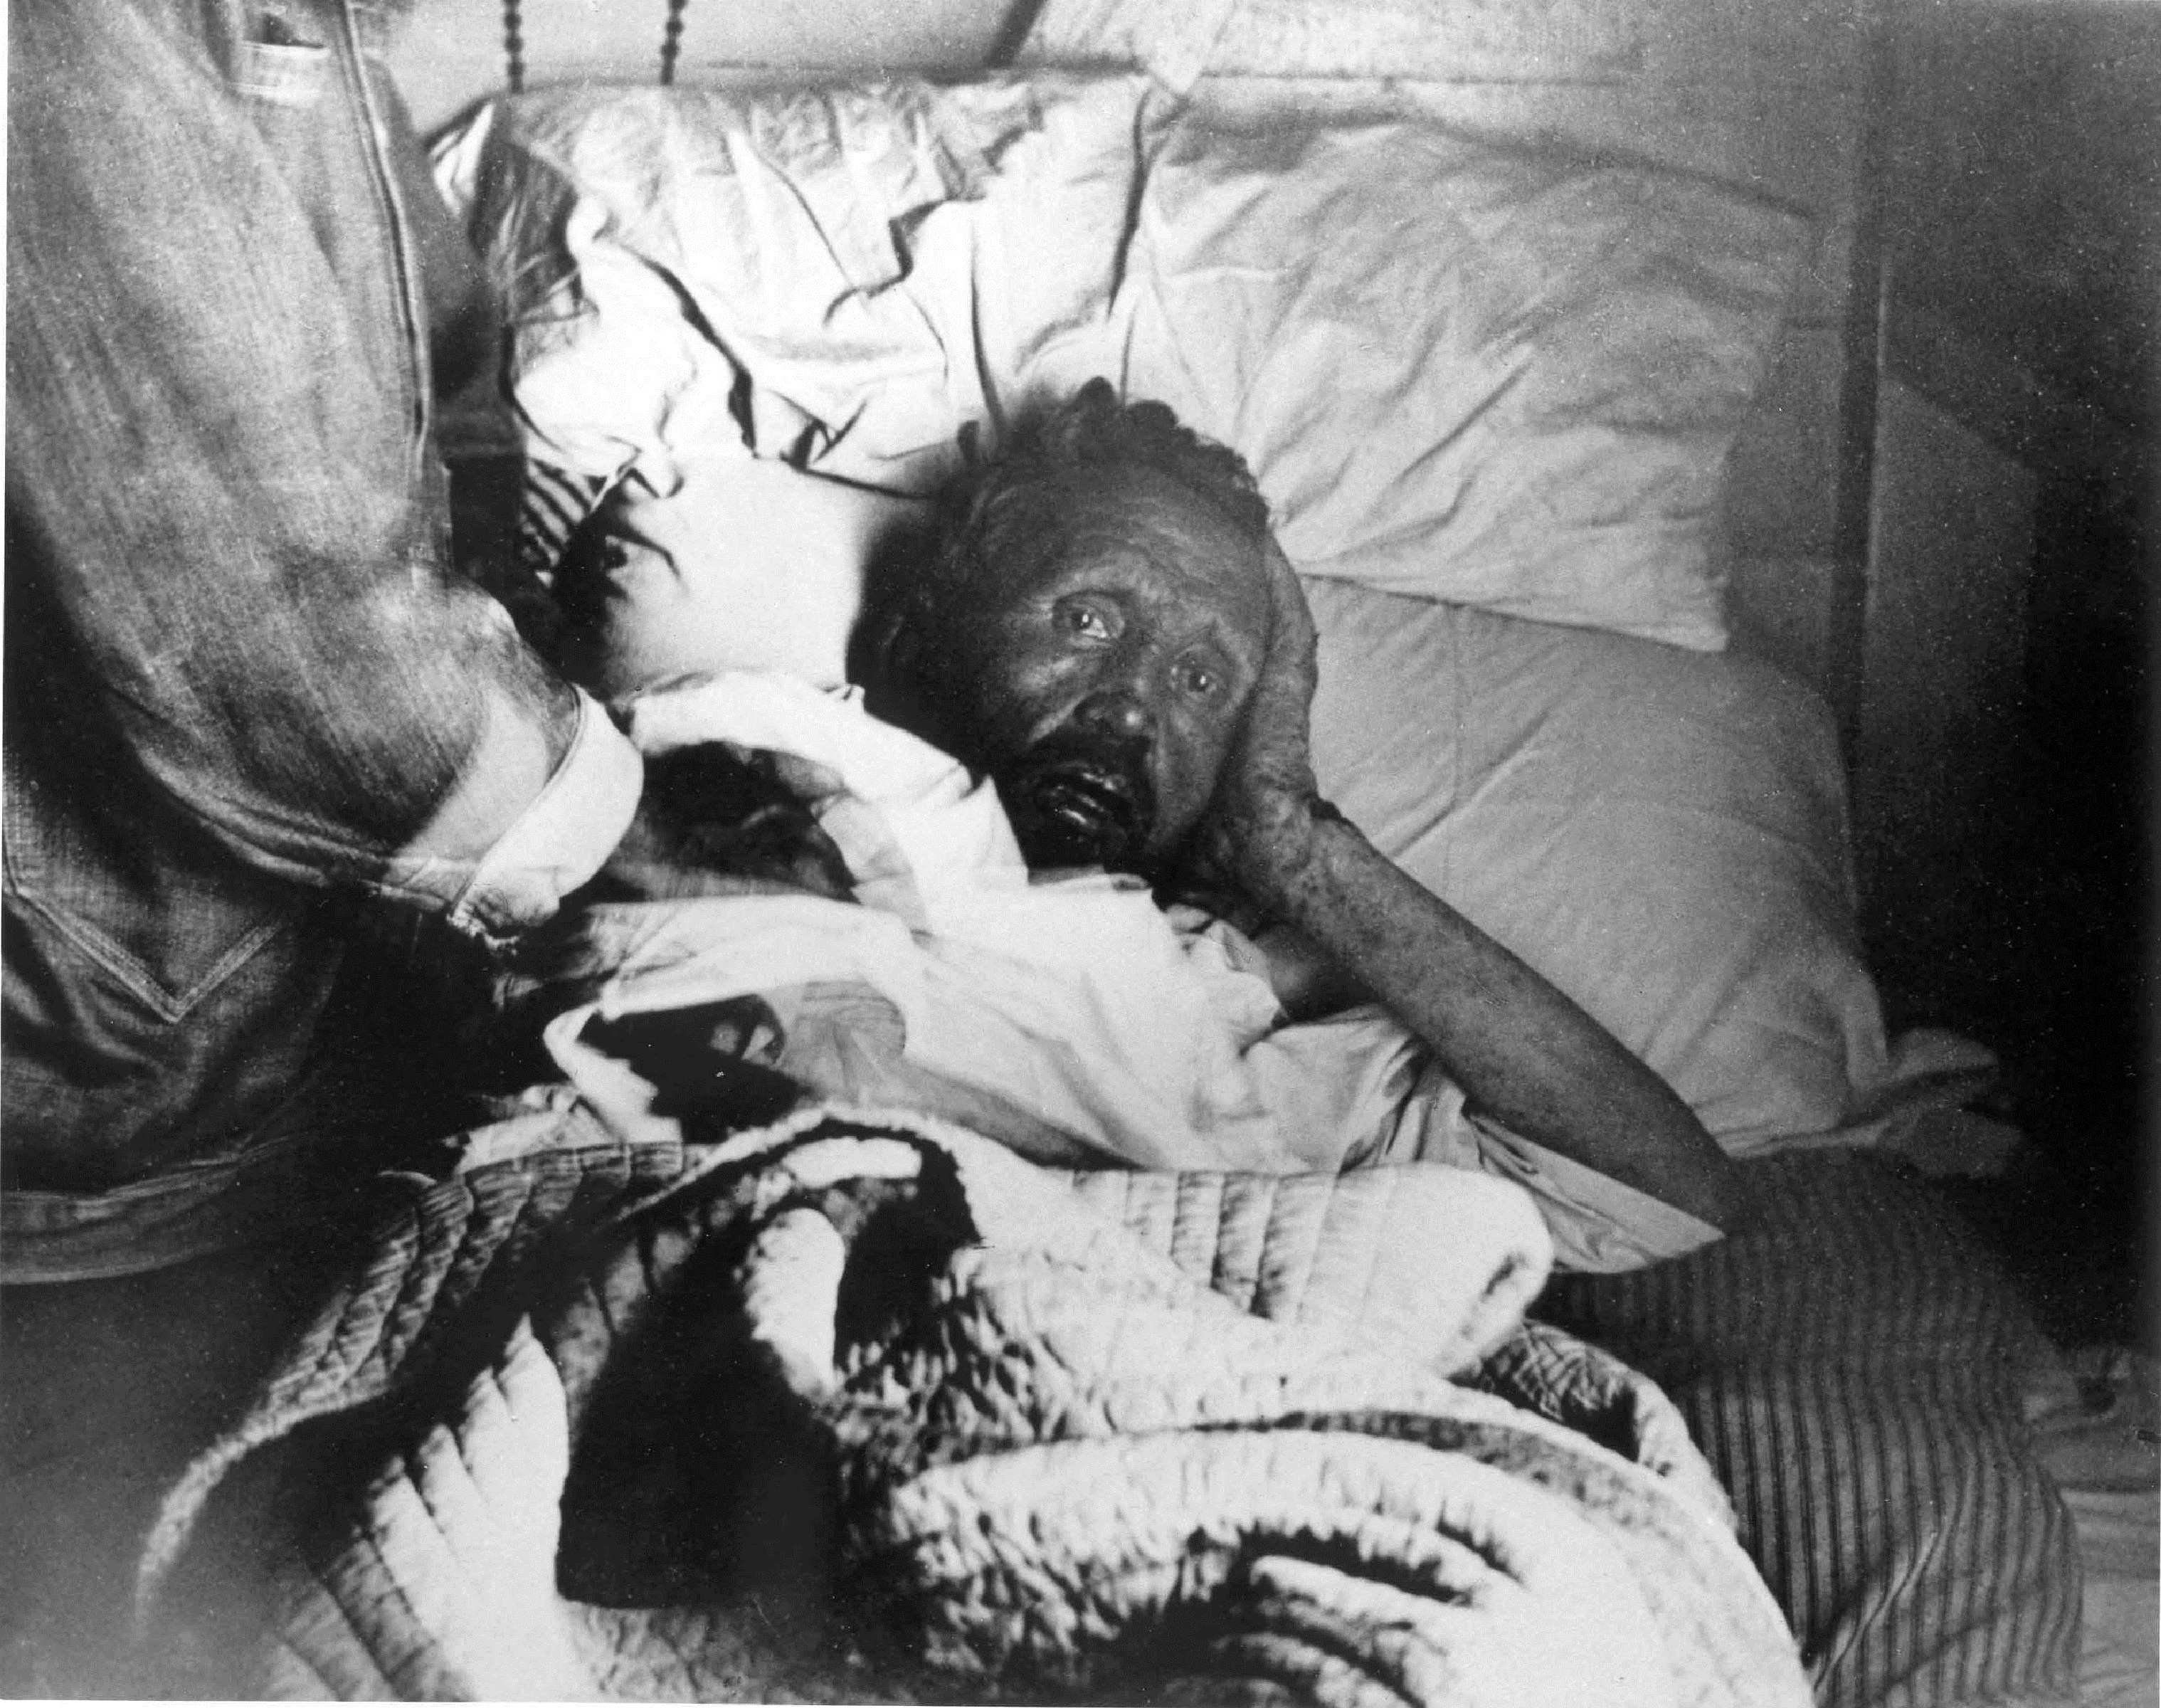 the history of leprosy Social stigma has been associated with leprosy for much of history, which continues to be a barrier to self-reporting and early treatment.